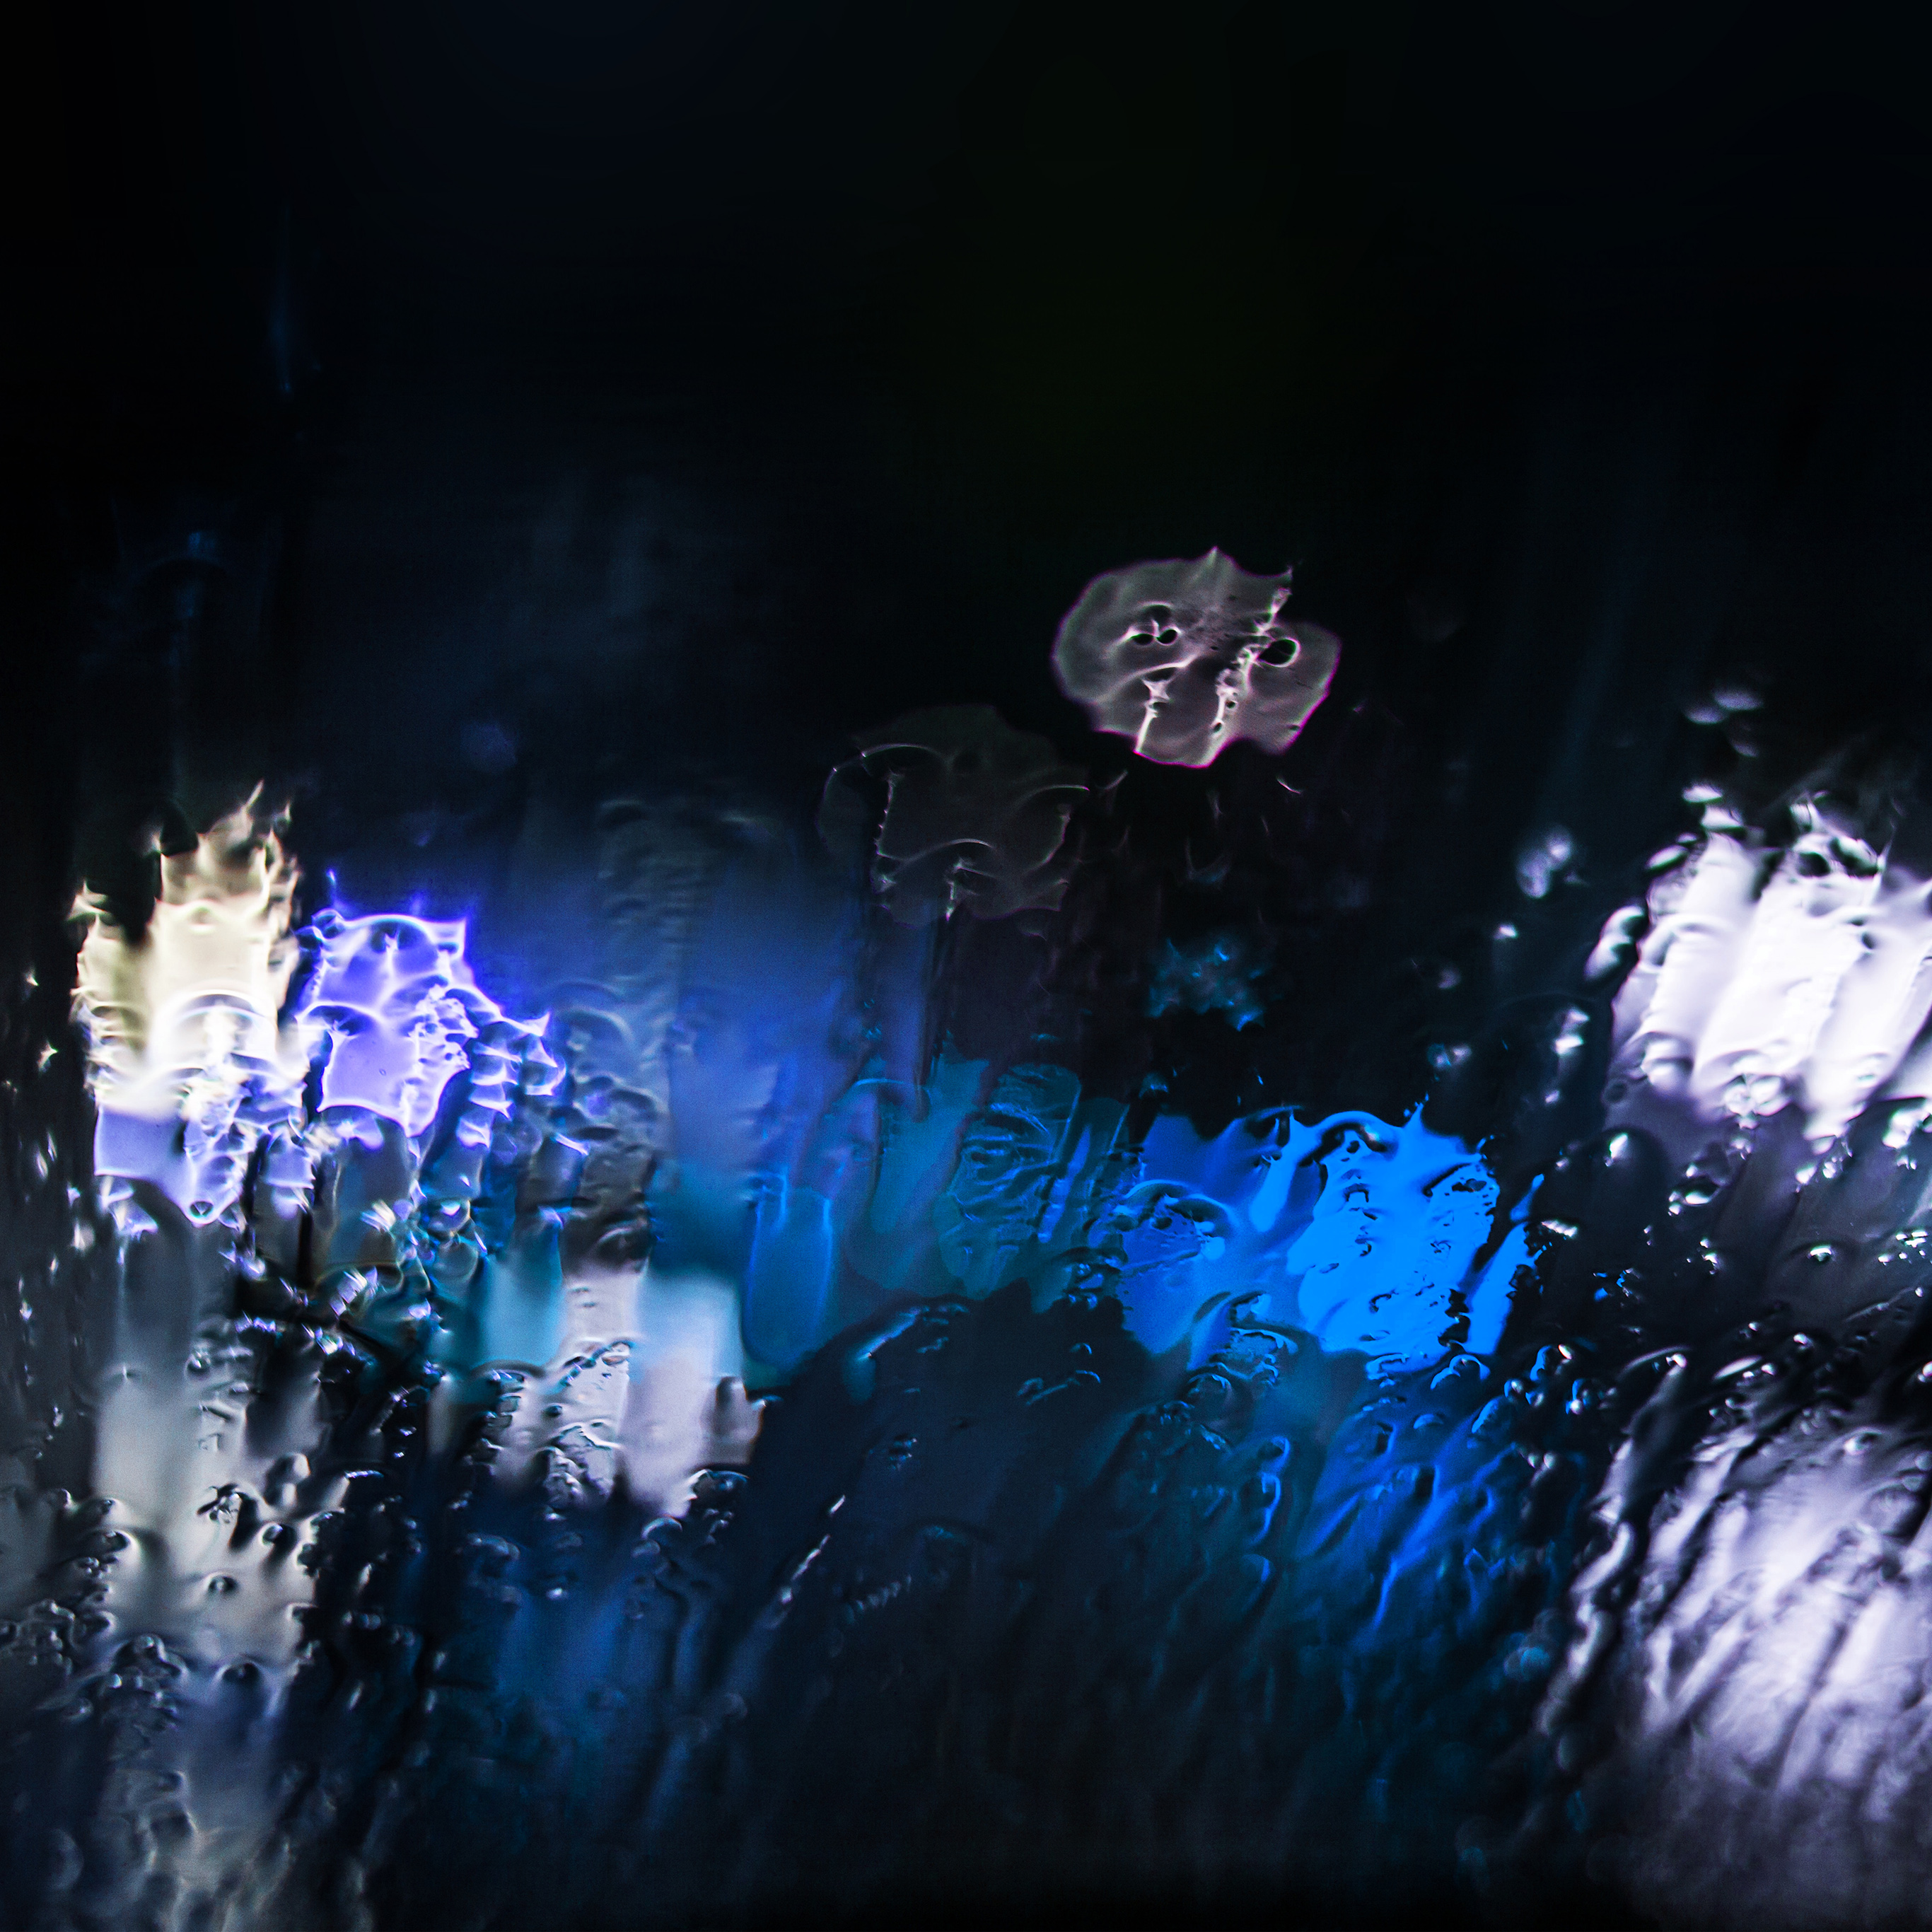 papers-co-mt25-raining-window-bokeh-blue-light-40-wallpaper